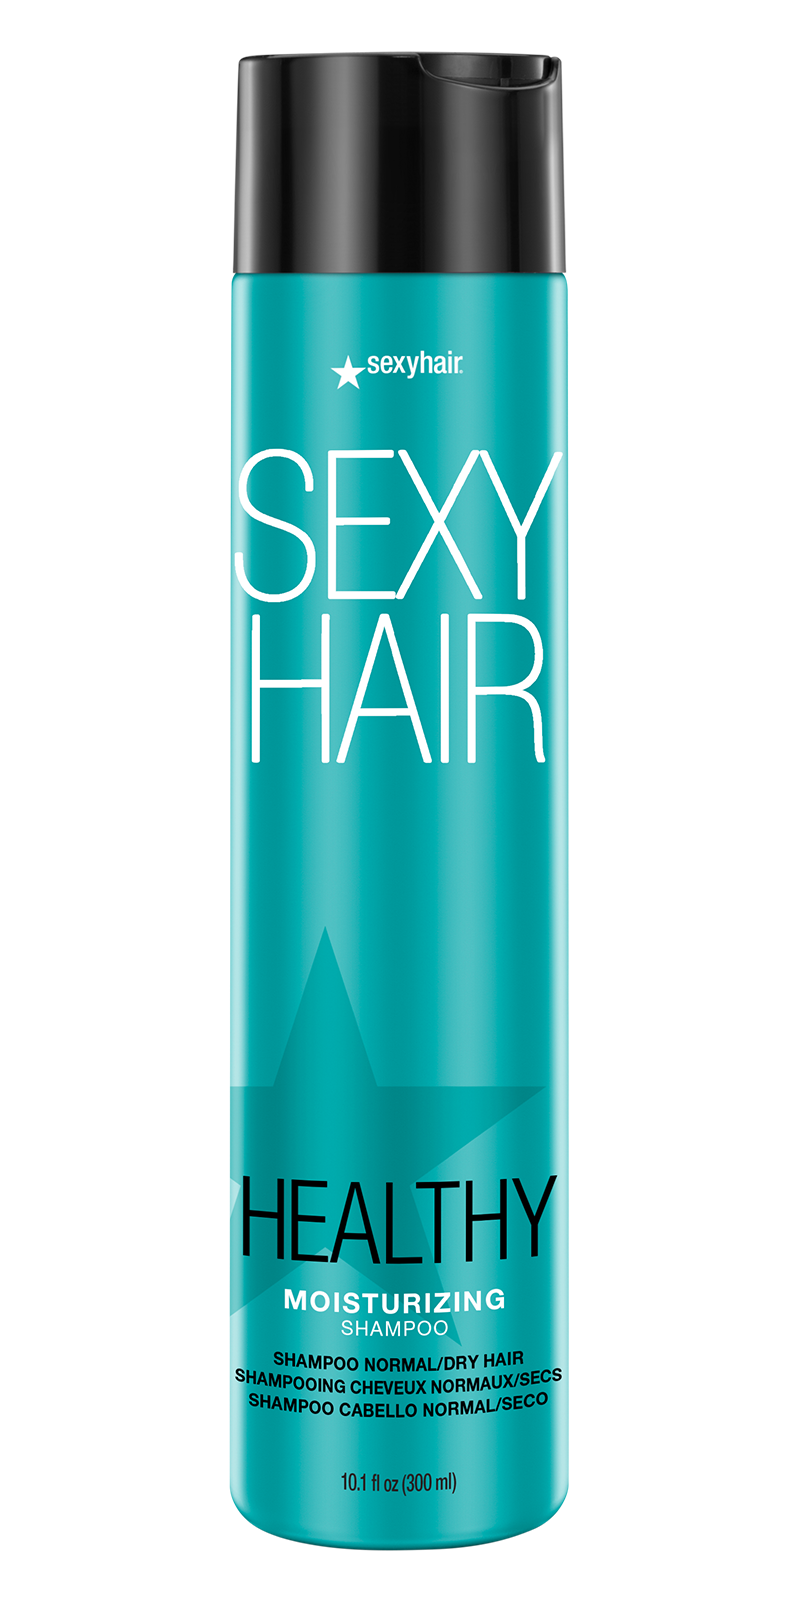 Featured Image for Product Moisturizing Shampoo